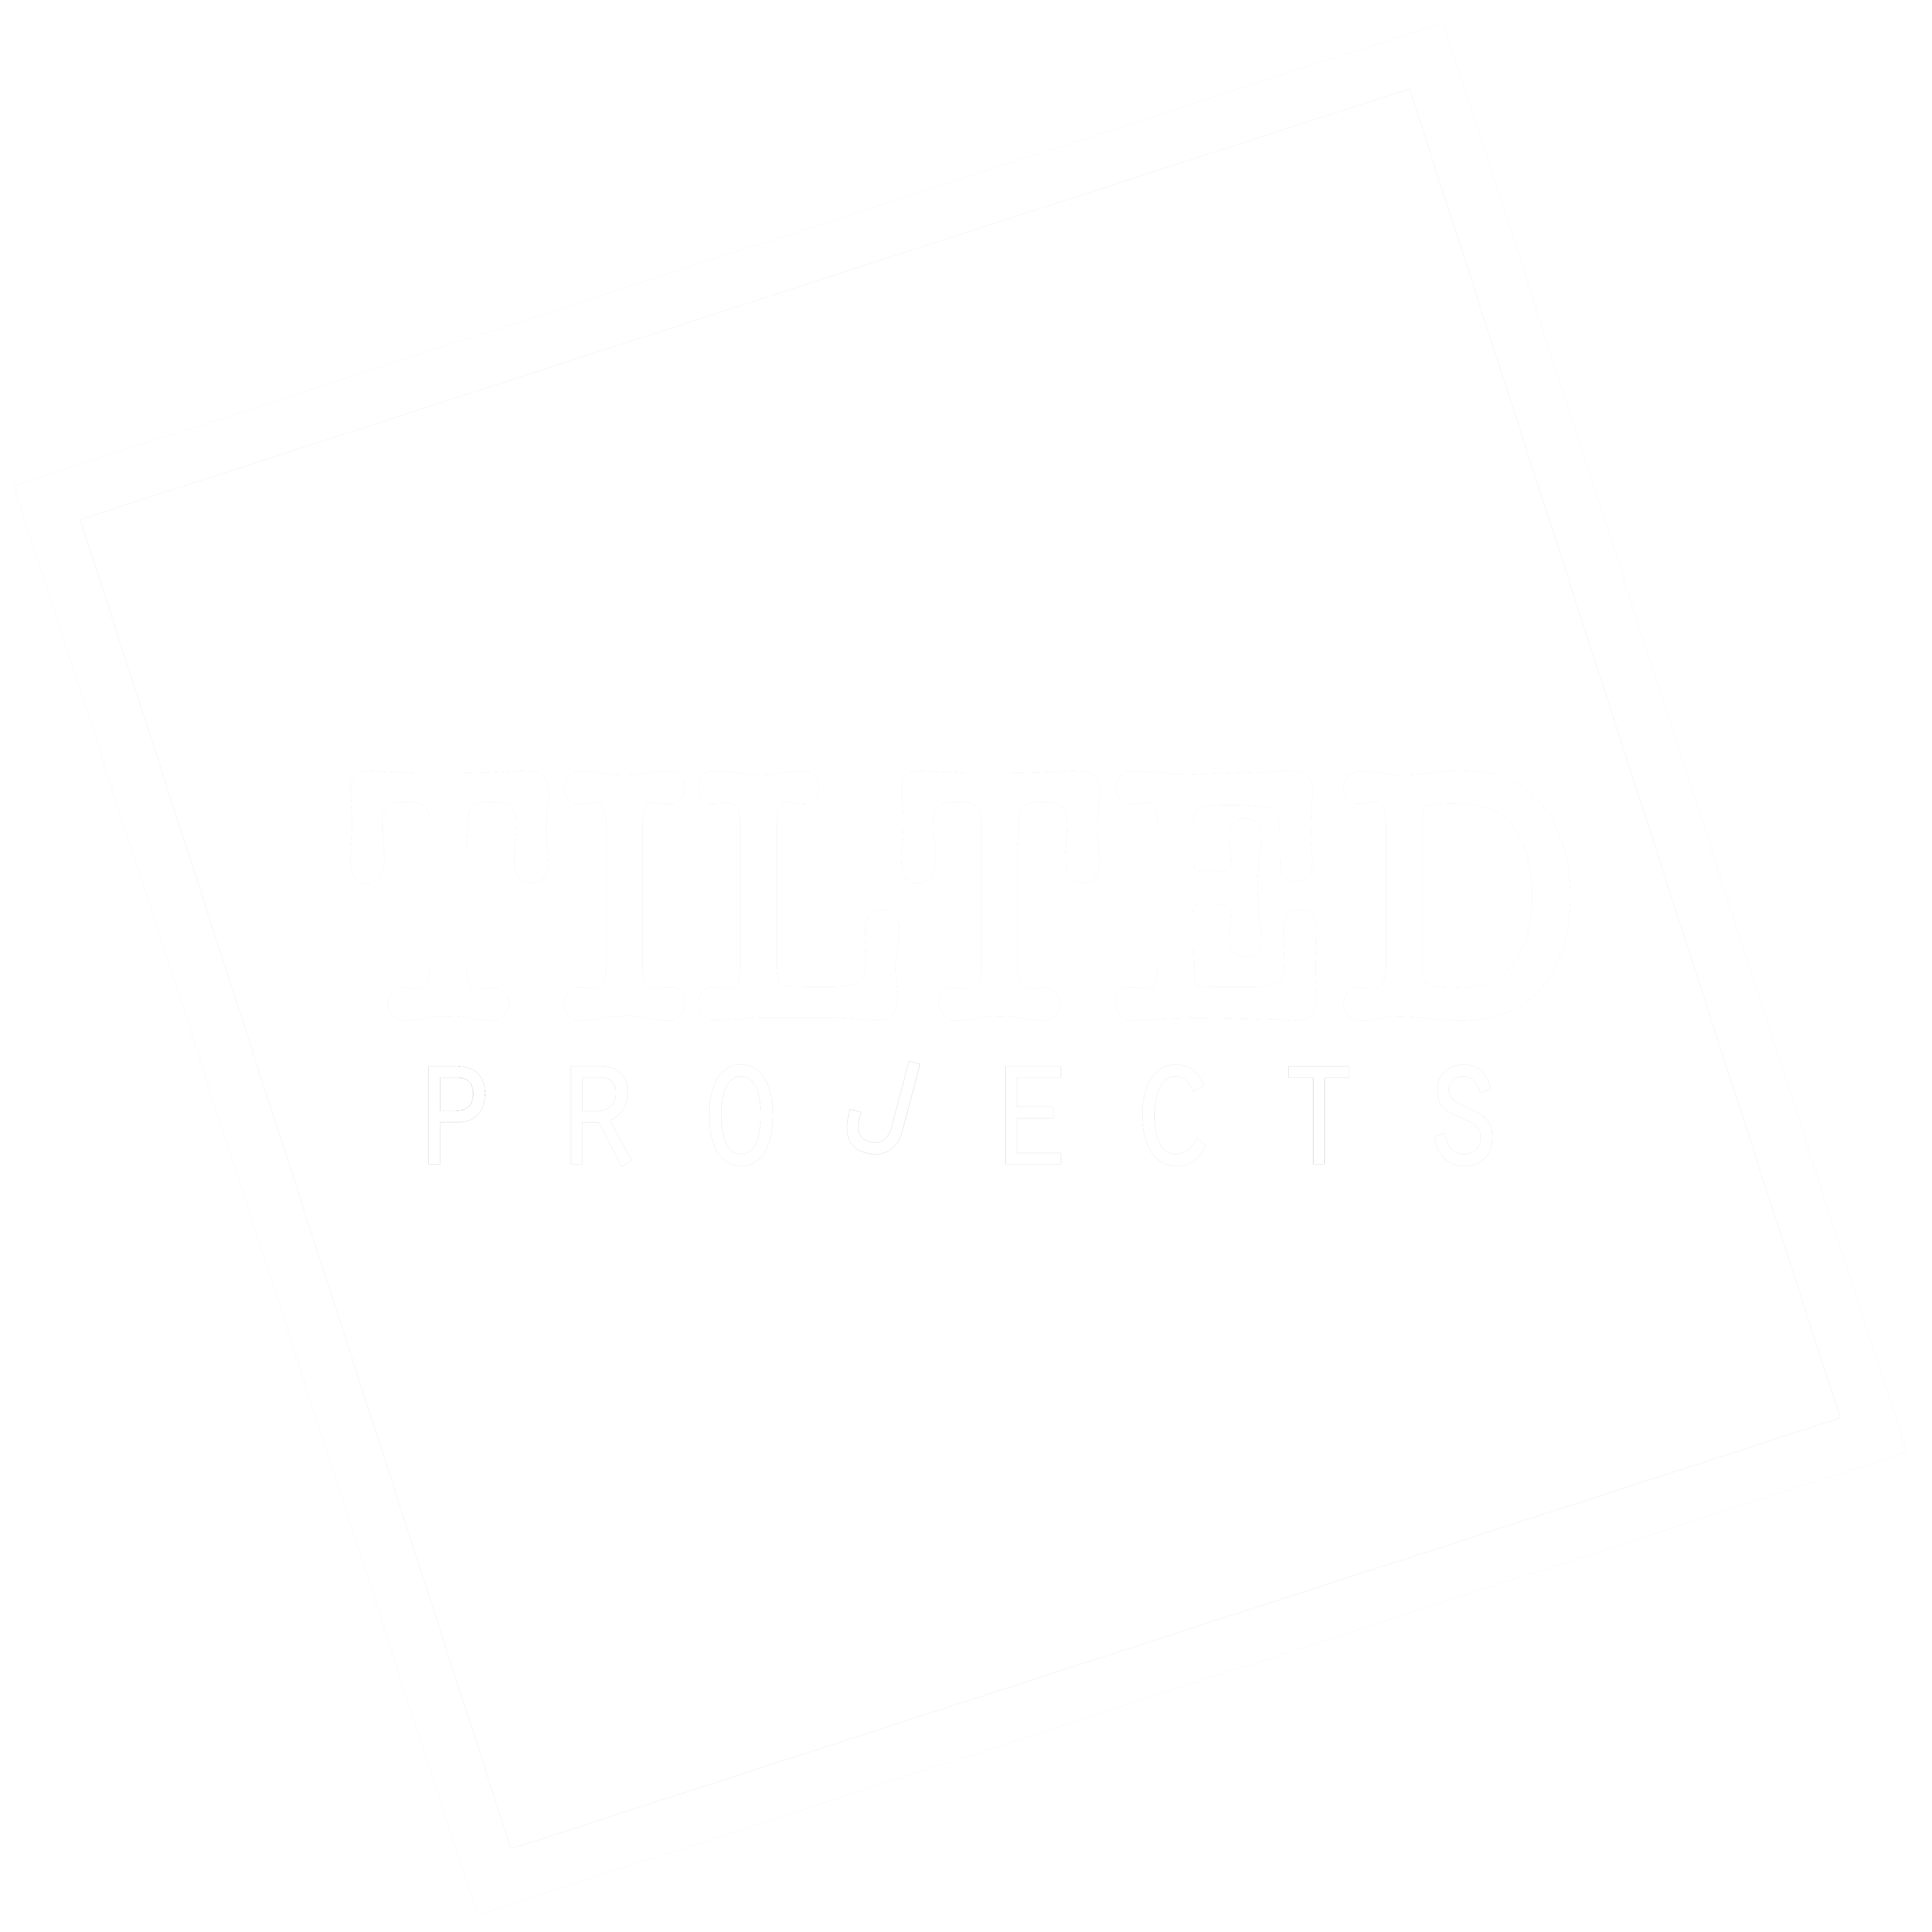 Tilted Projects